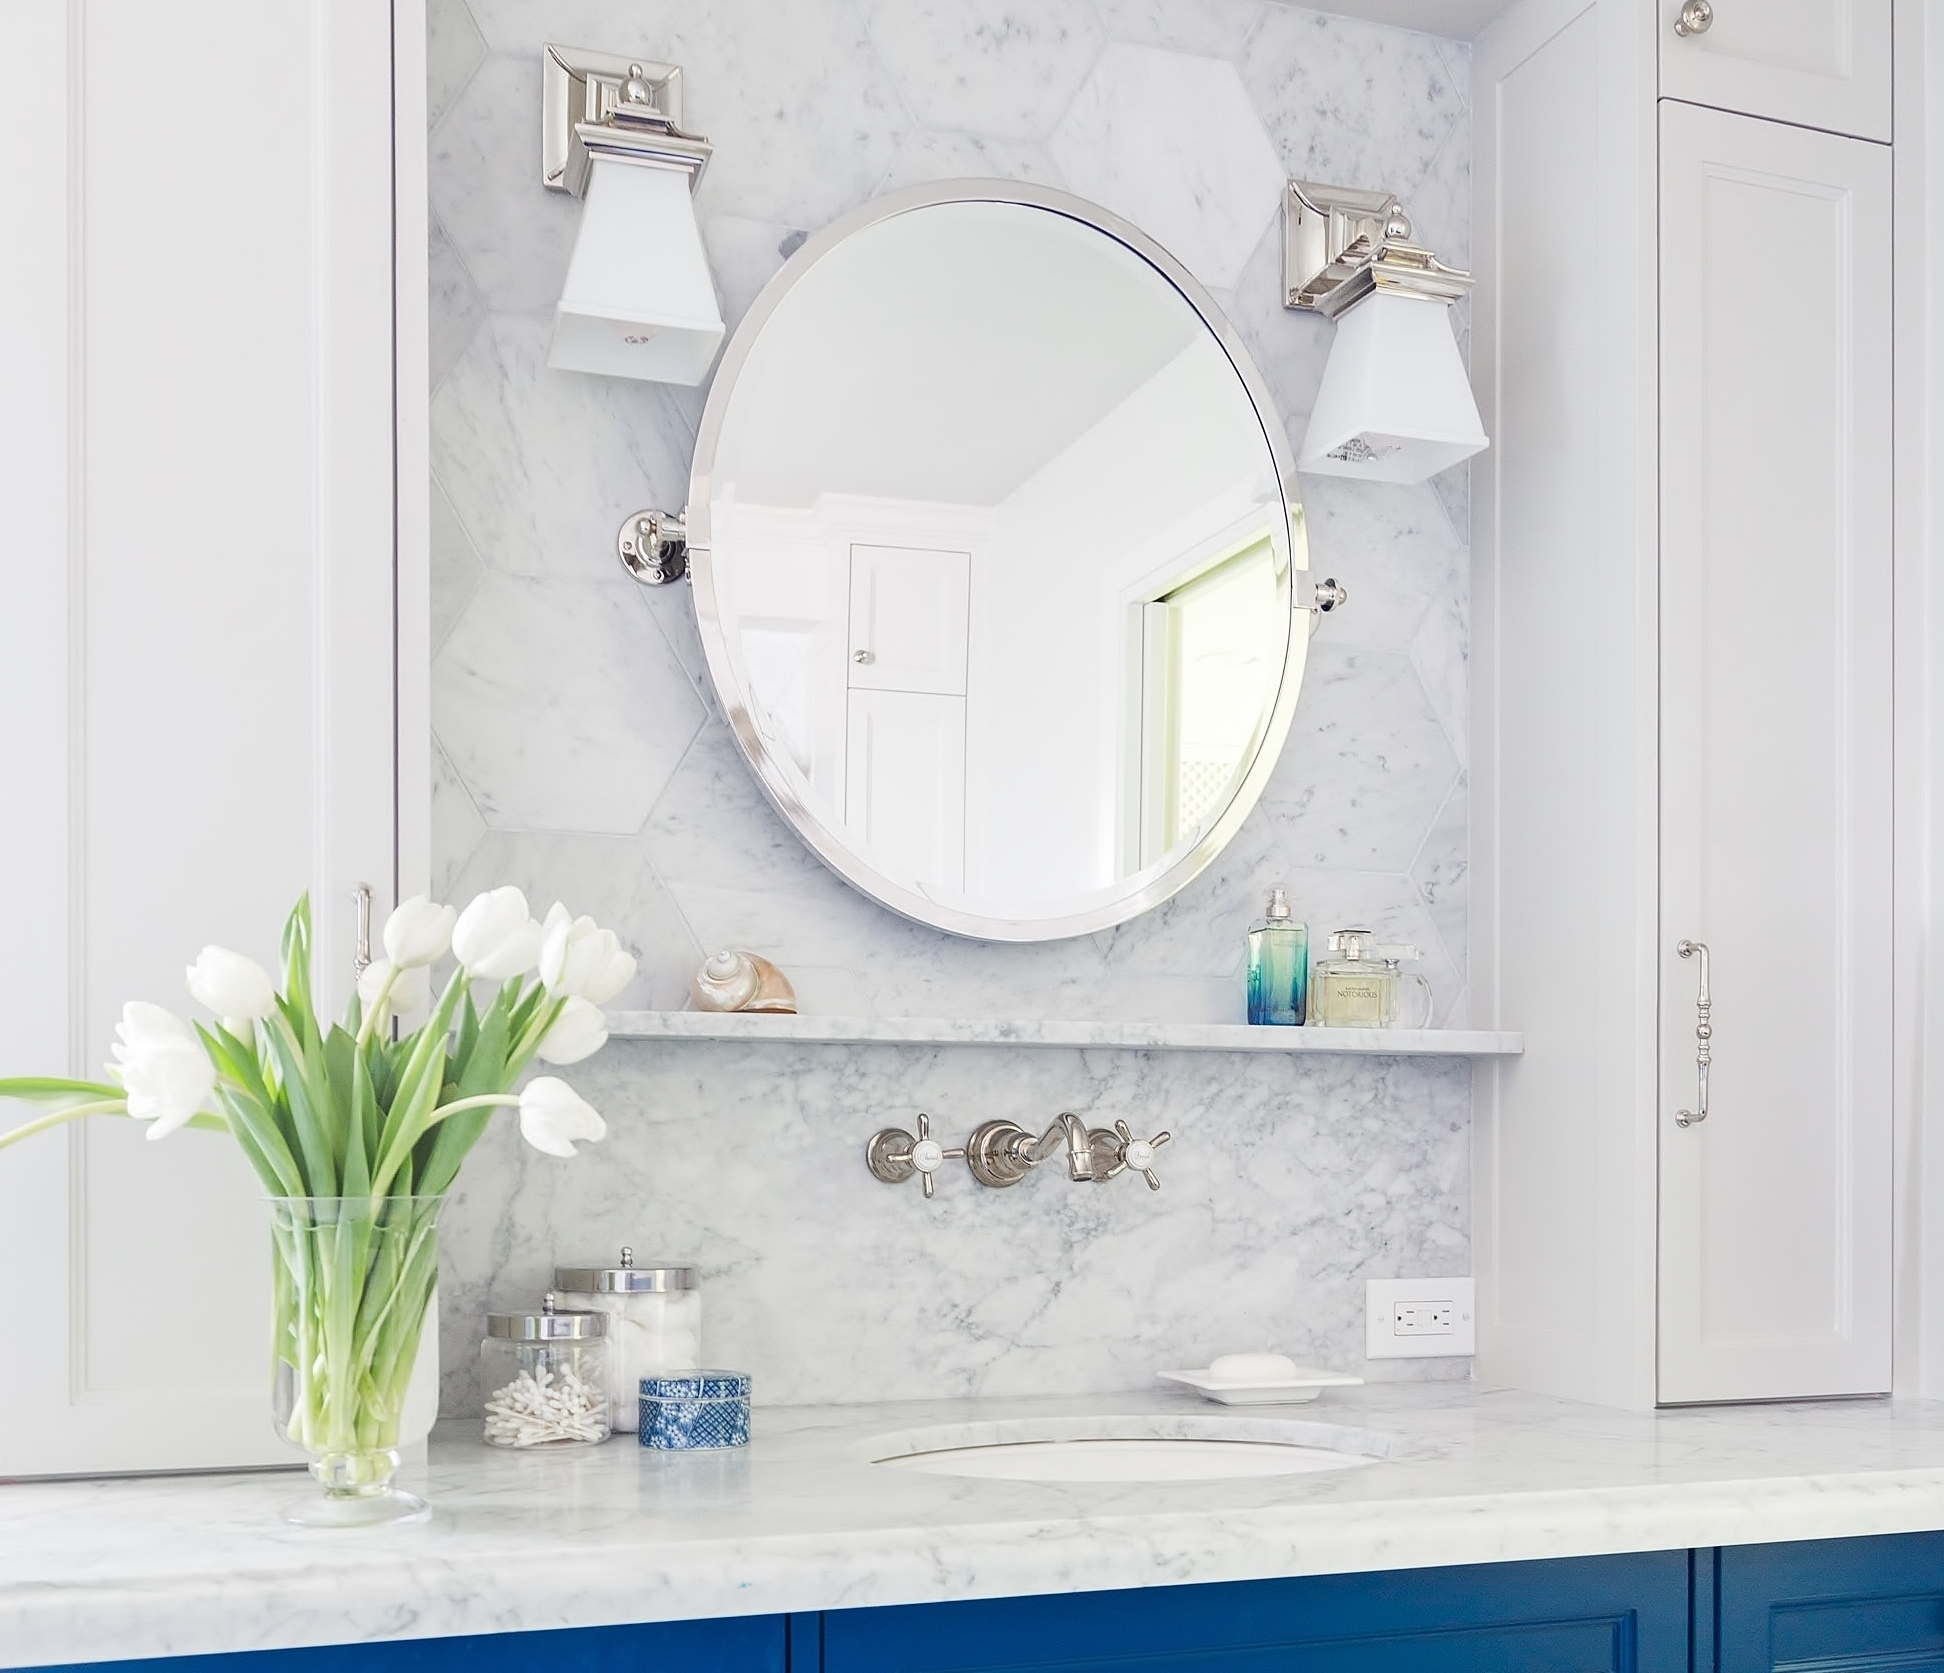 Two single sconces work better than a typical bath bar at the bathroom vanity. Carla Aston, Designer | Tori Aston, Photographer #vanitylight #bathroomdesign #bathroomsconces #bathlight